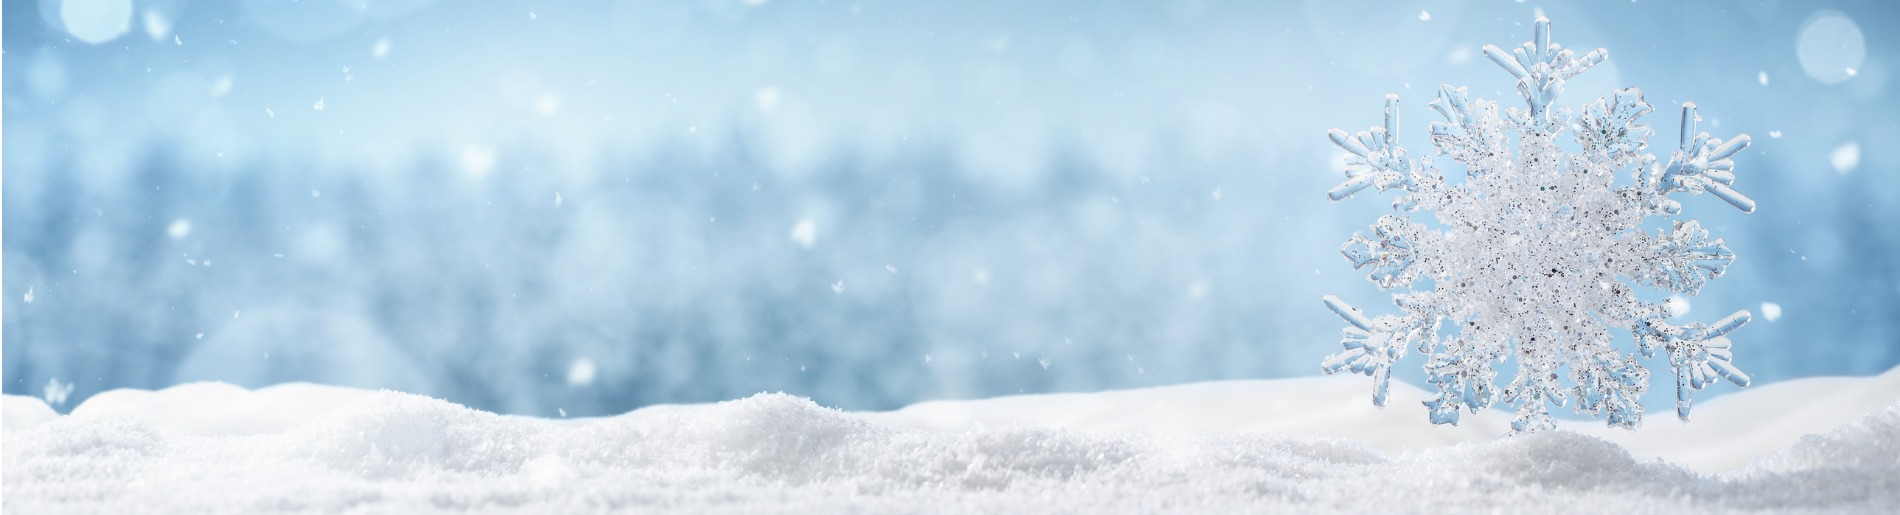 Winter background with large snow flake